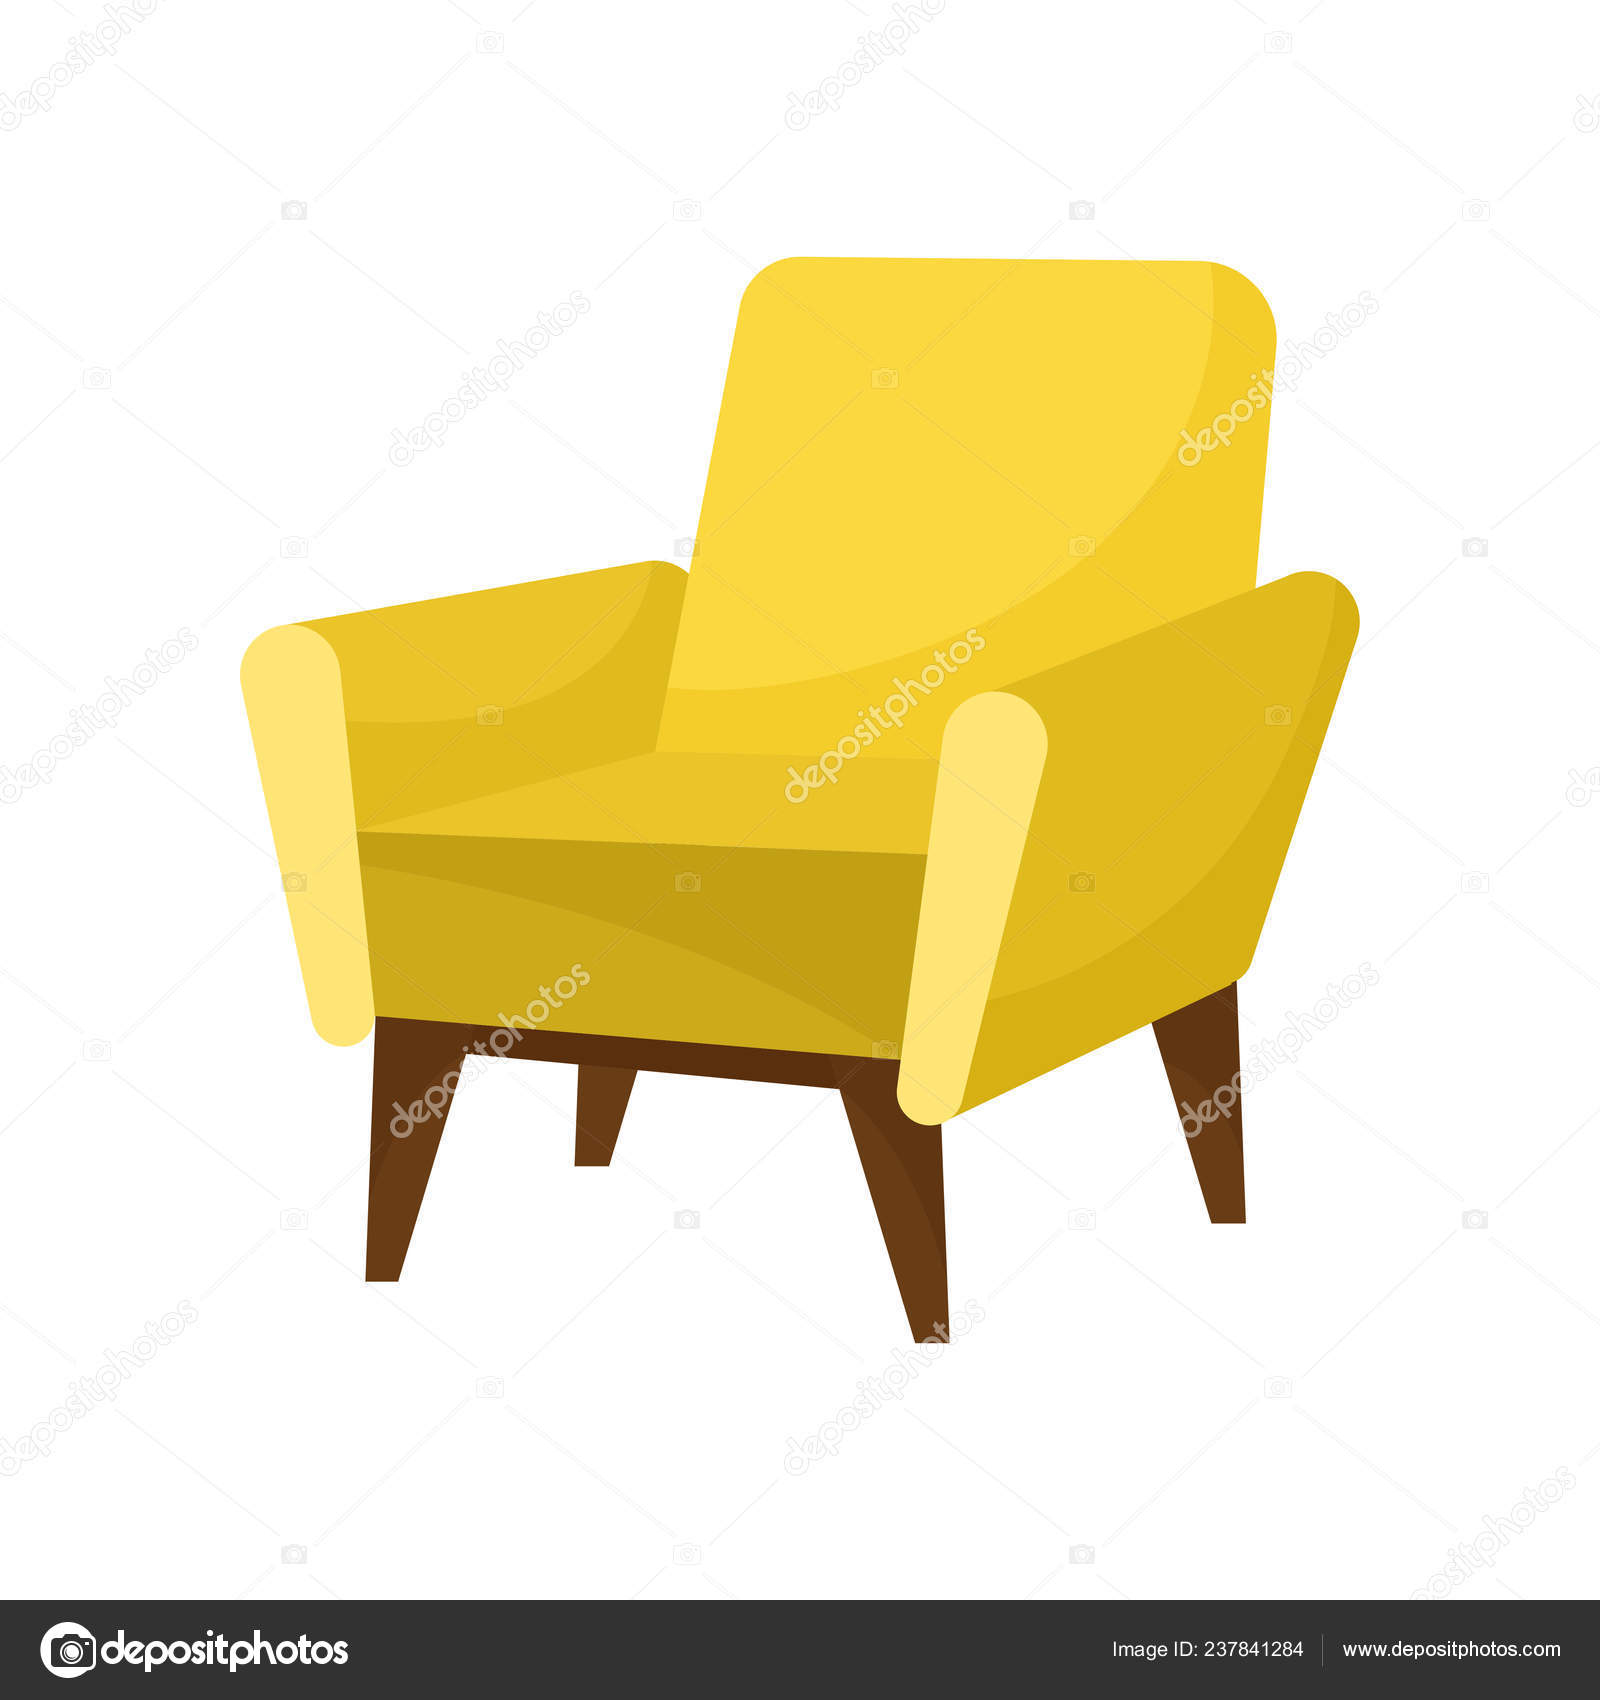 Fabulous Trendy Yellow Armchair With Wooden Legs Comfortable Machost Co Dining Chair Design Ideas Machostcouk